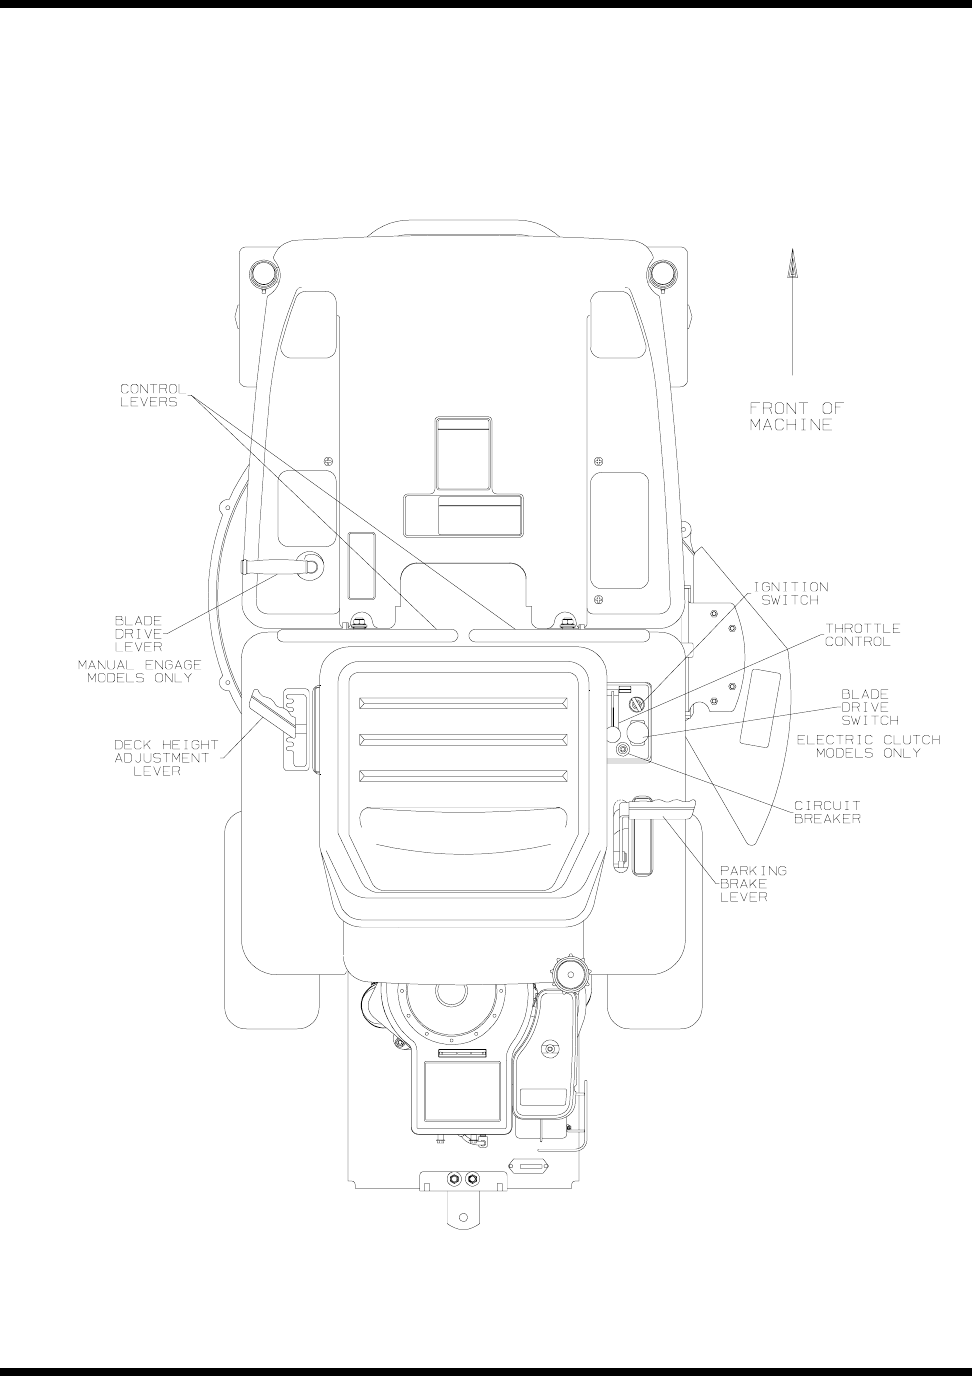 Dixon Ztr 3304 Ignition Wiring 2000 Ford F550 Fuse Panel Diagram – Dixon Ztr 2301 Ignition Wiring Diagram